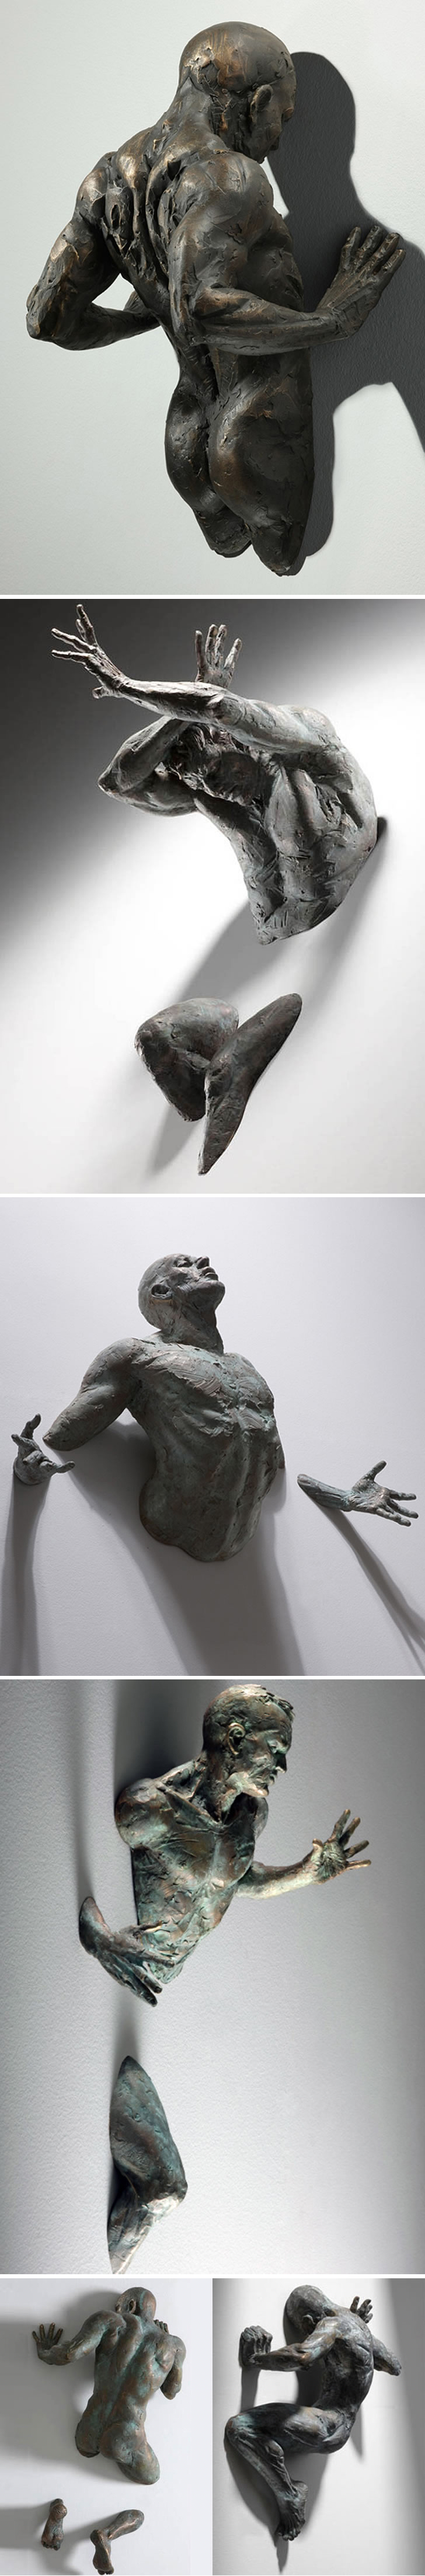 'Self-struggle' made by Matteo Pugliese  These are awesome.